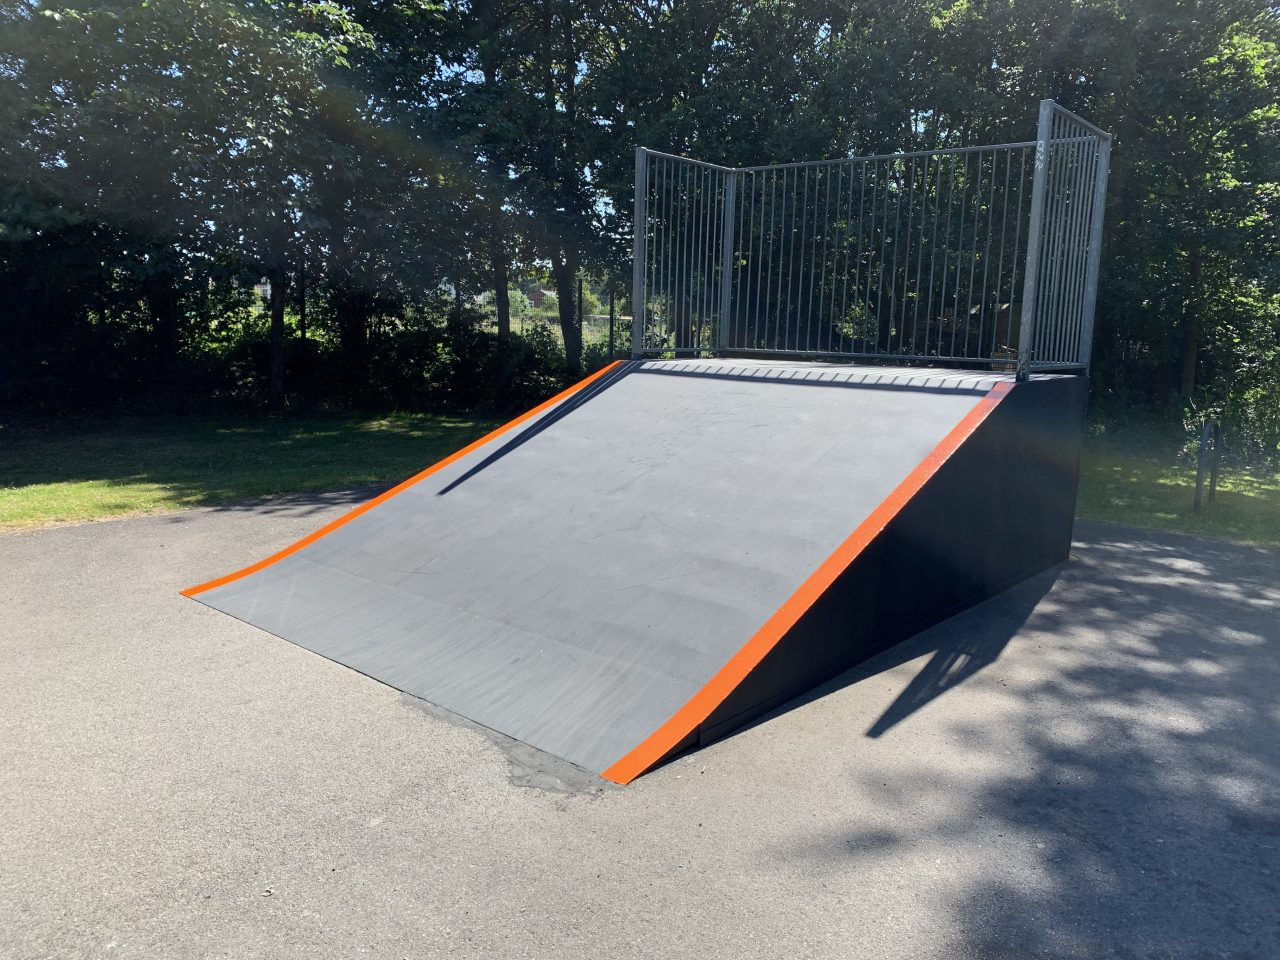 https://burghfieldparishcouncil.gov.uk/wp-content/uploads/2019/07/Skate-Park1-1280x960.jpg